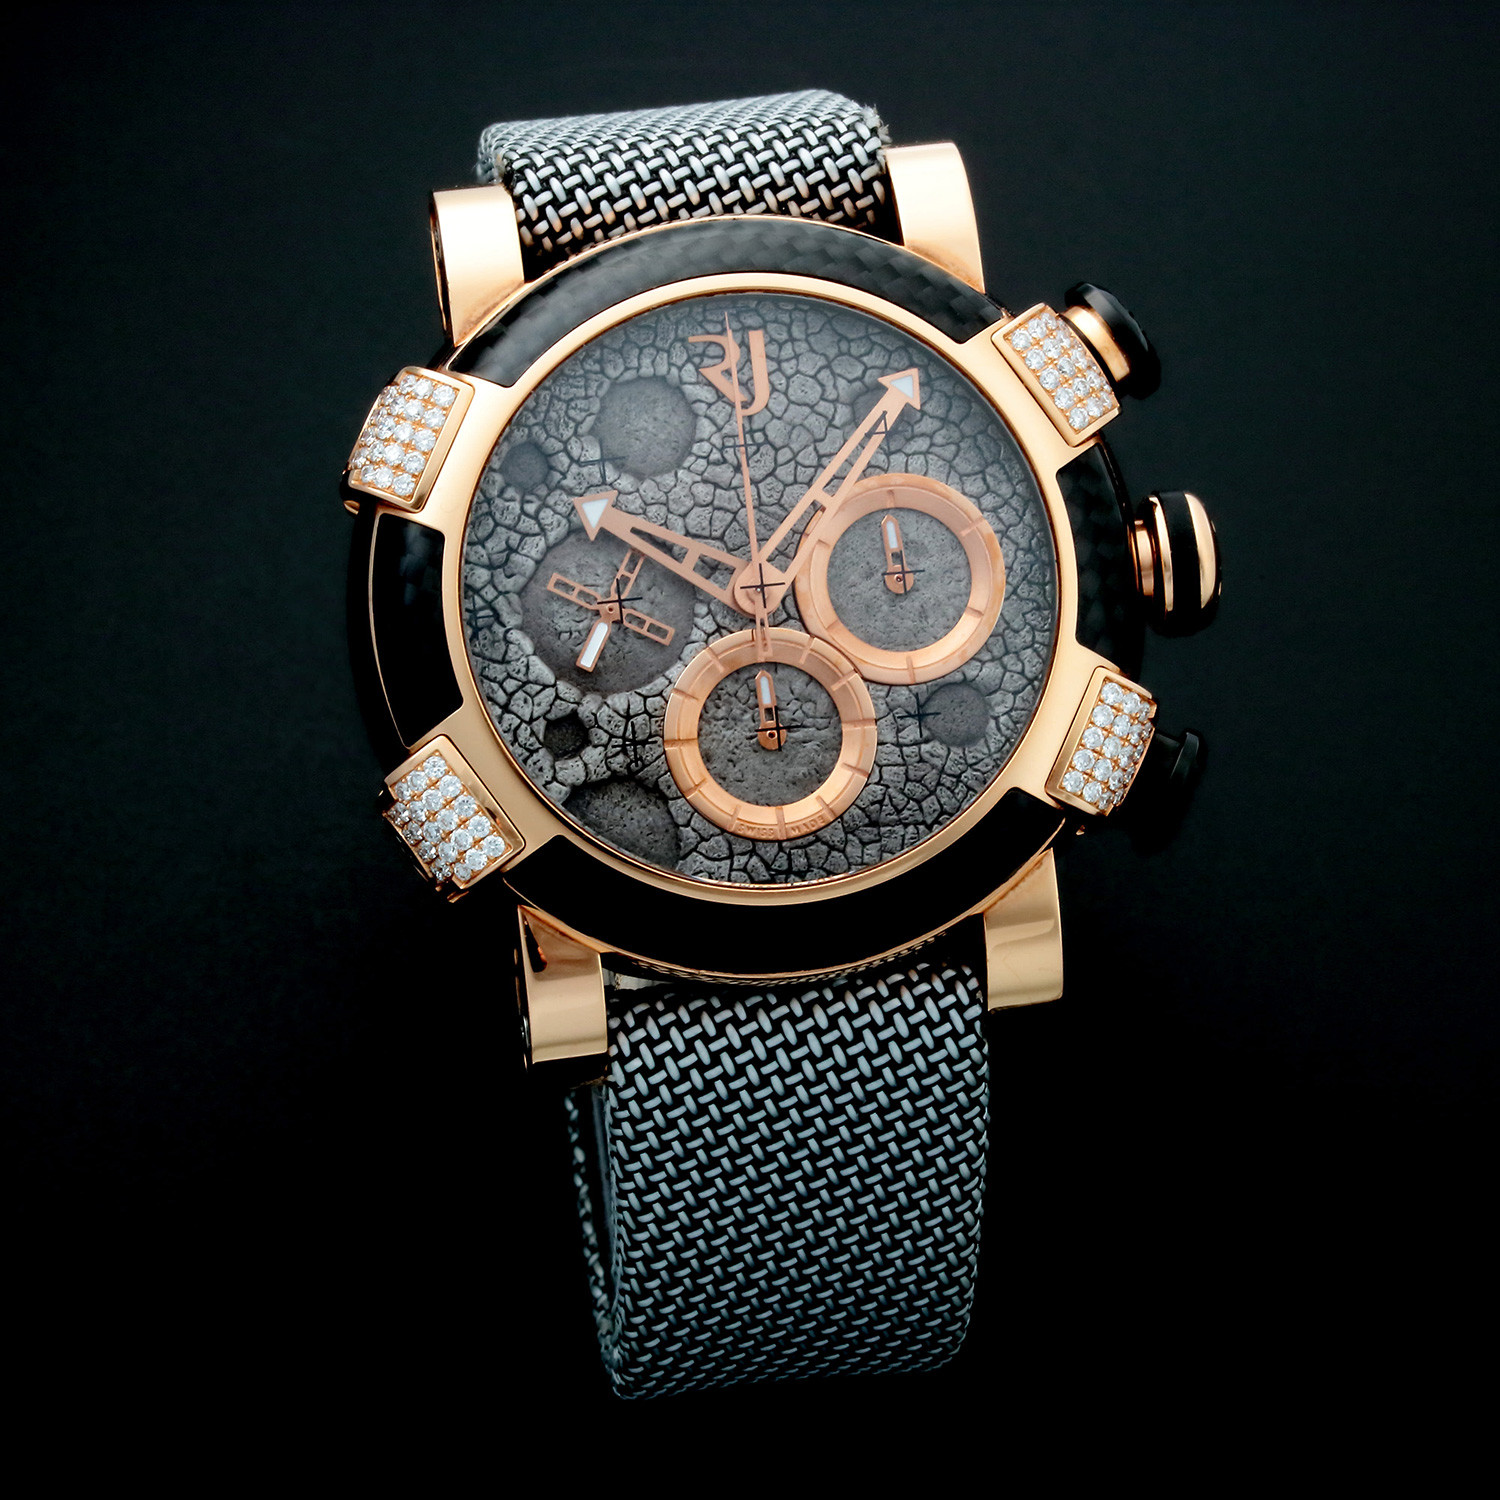 Romain jerome titanic dna moon dust automatic limited for Jerome girard